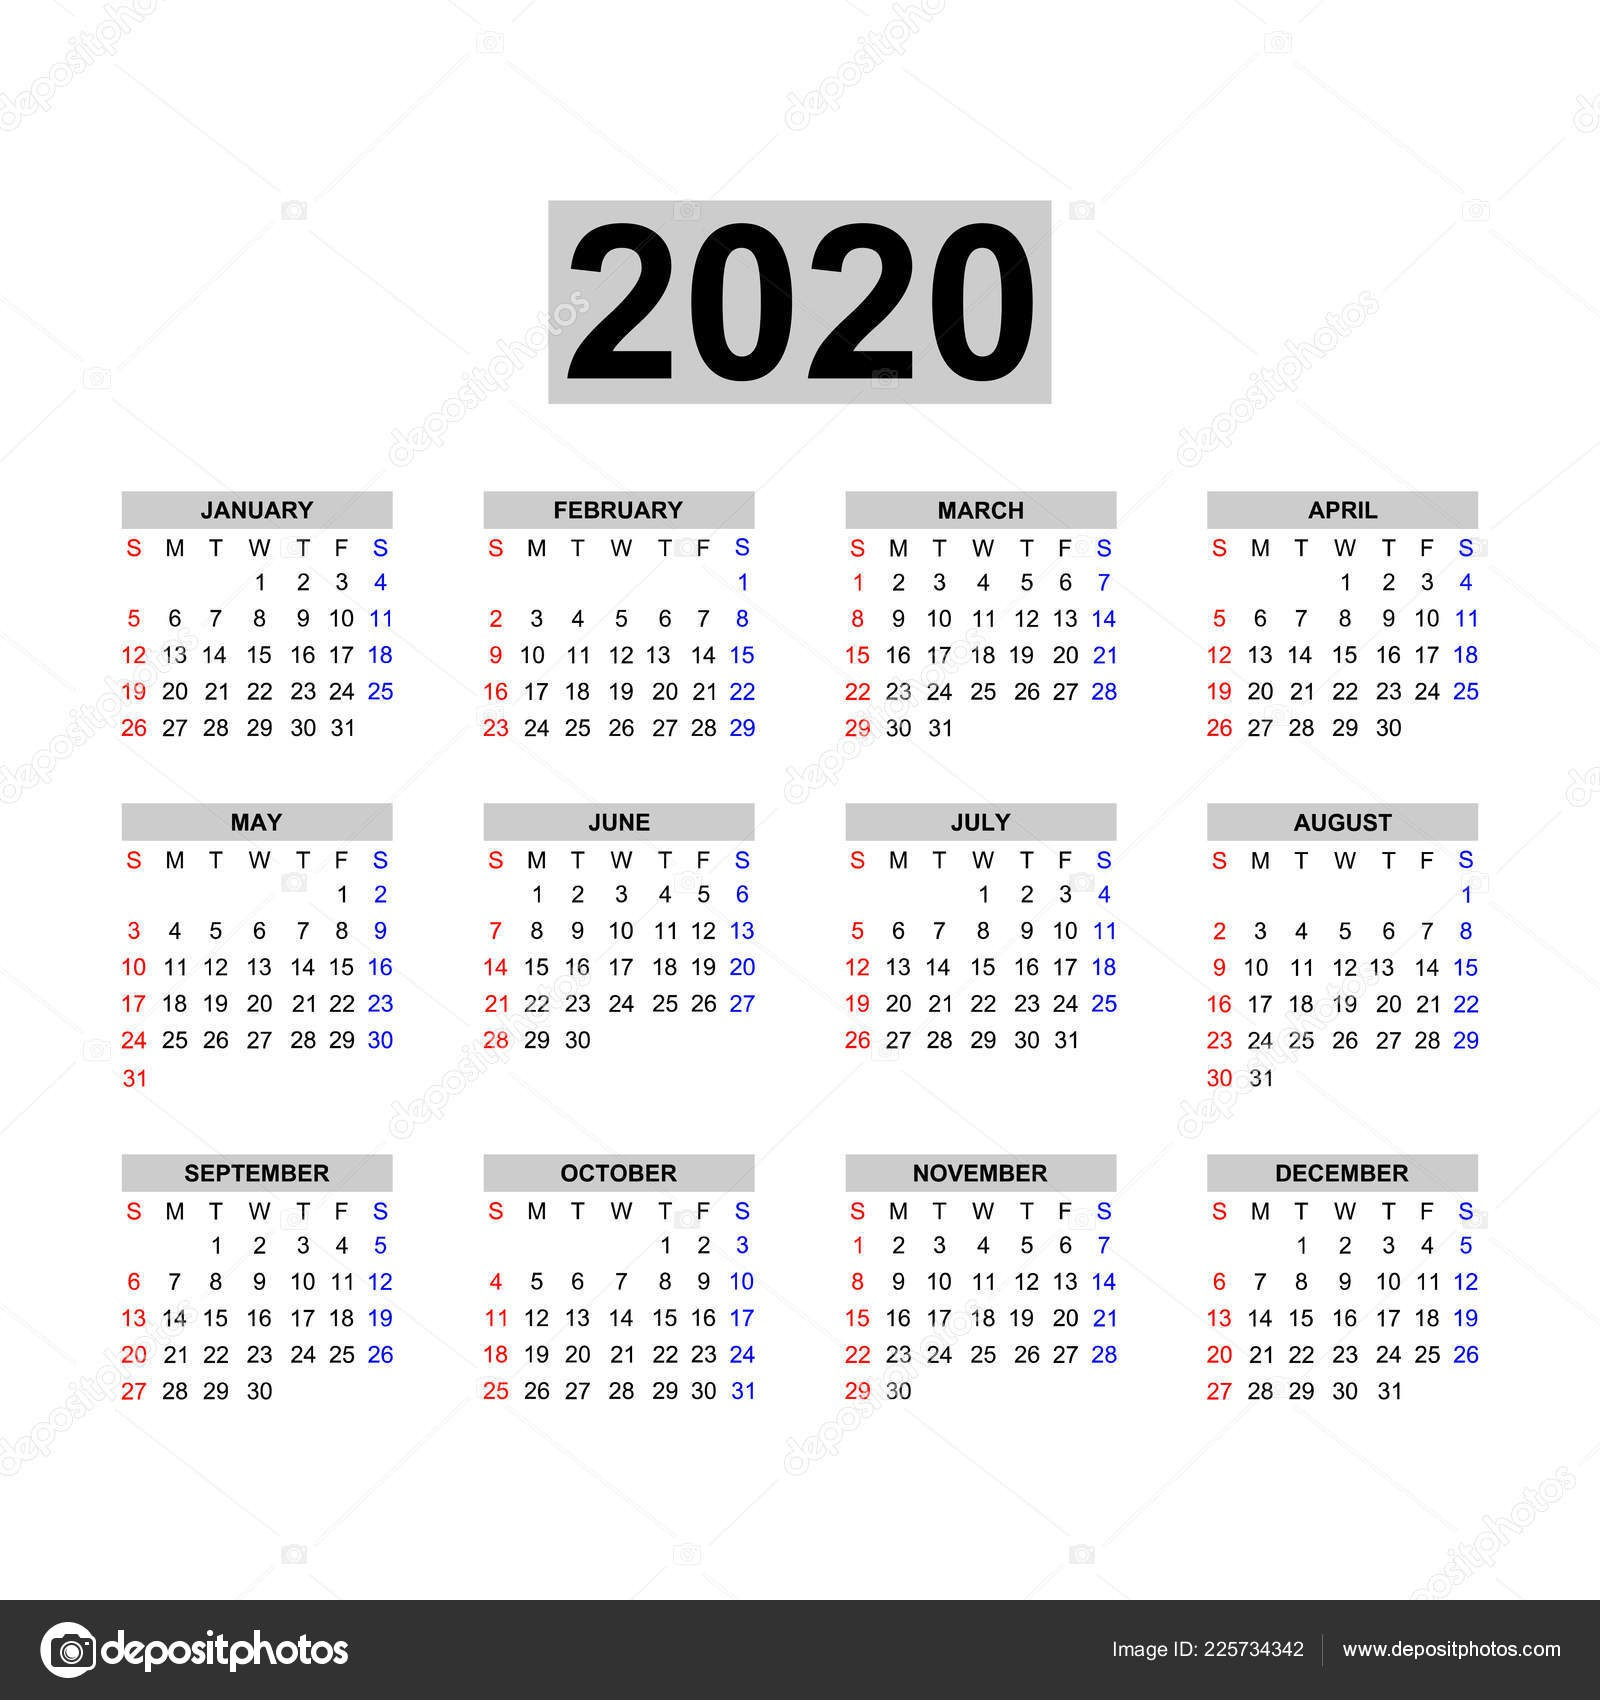 depositphotos stock illustration calendar 2020 template calendar design